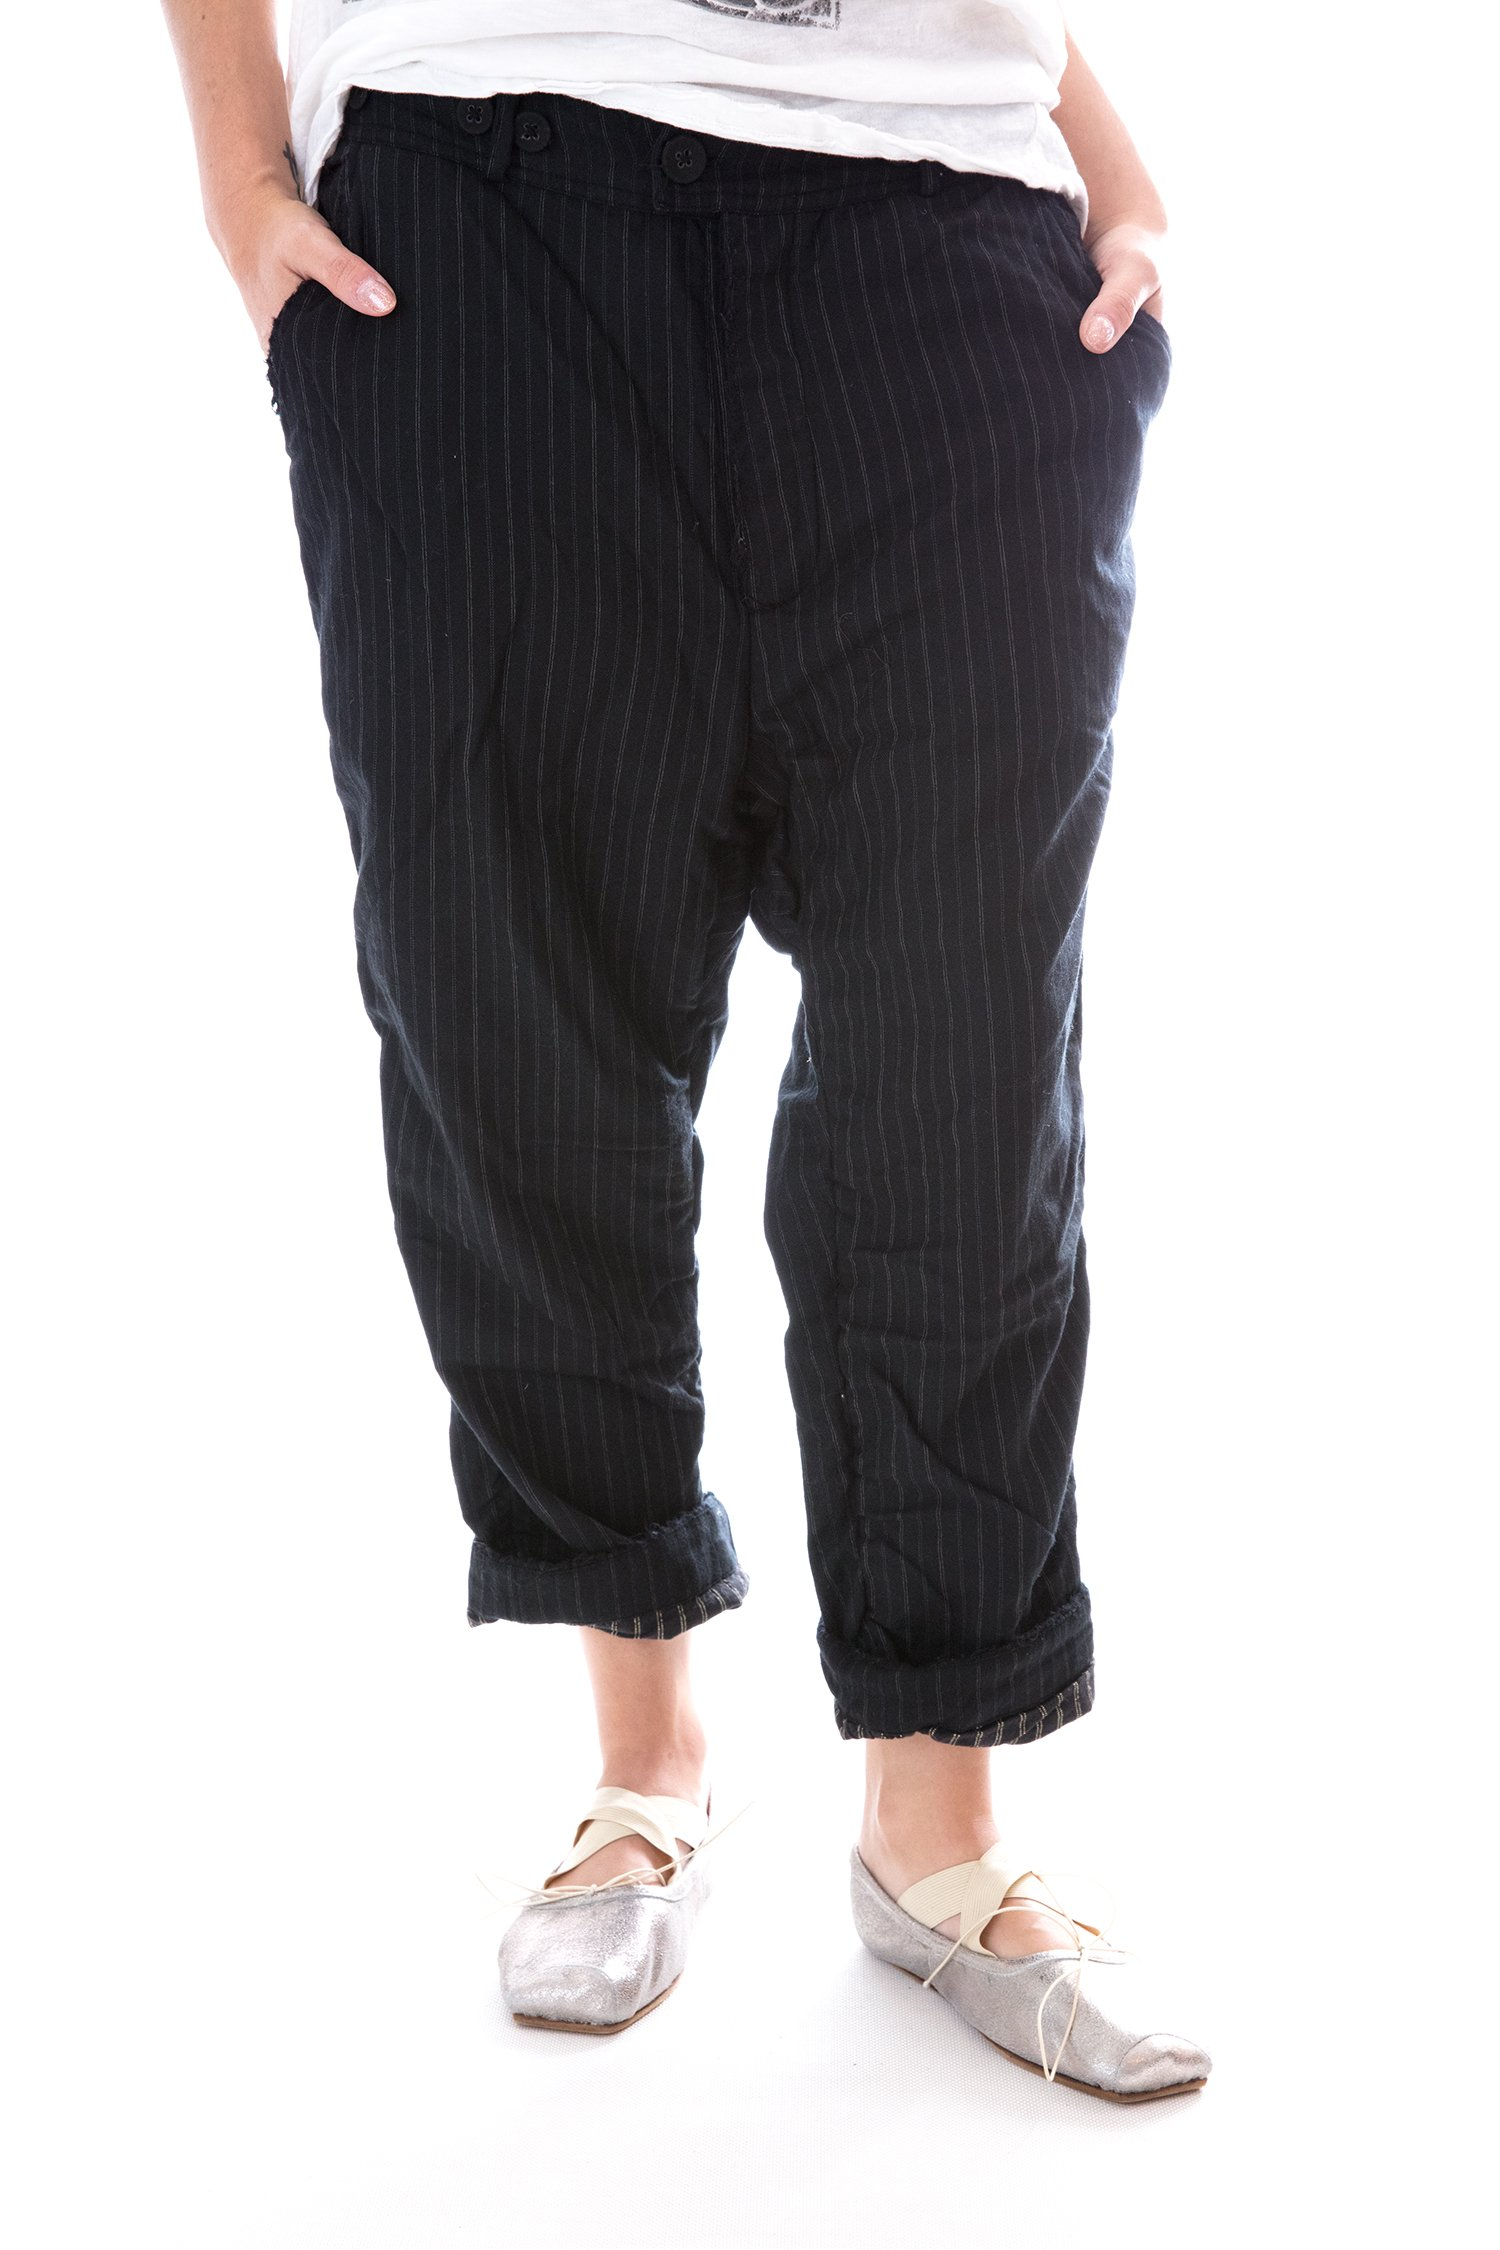 Fine Wool Violet Pants with Cotton Lining by Magnolia Pearl (Image #1)